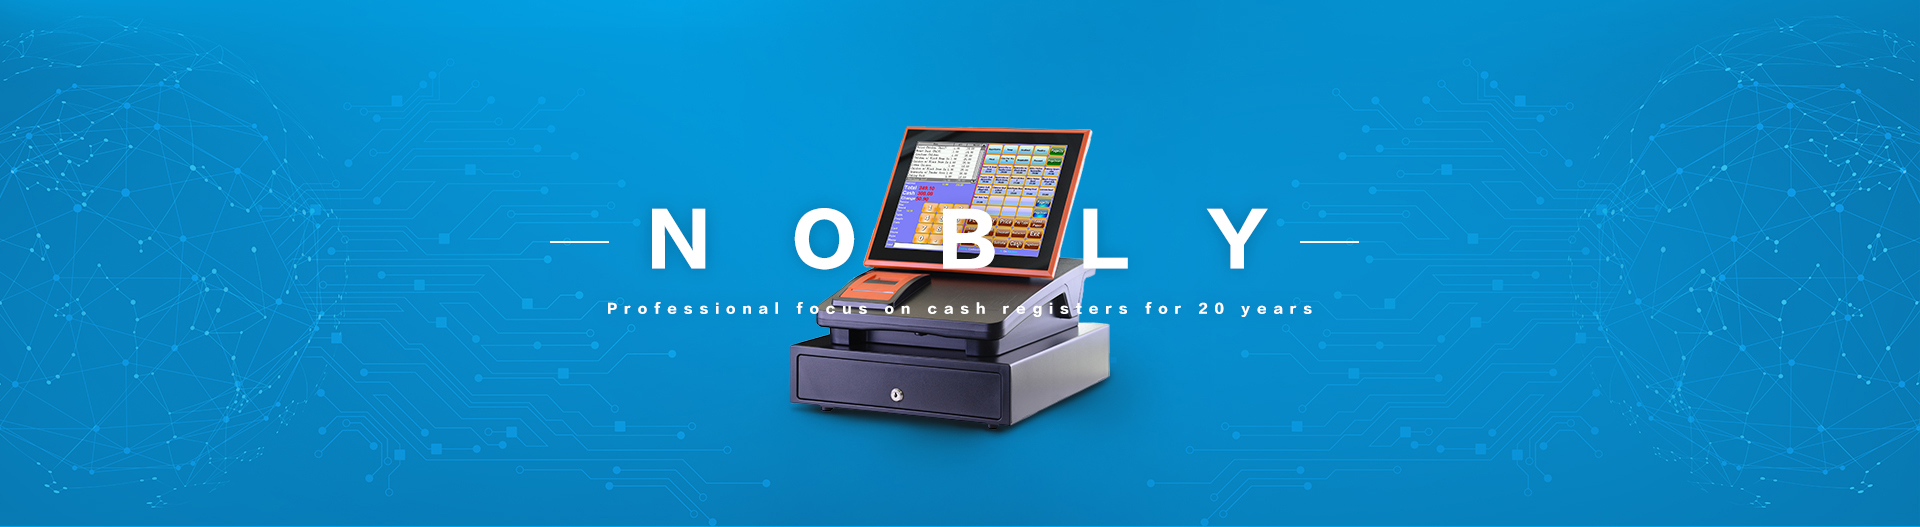 NOBLY dual 10.1 inch capacitive touch screen POS cash registers C86A simple POS system-NOBLY Technology